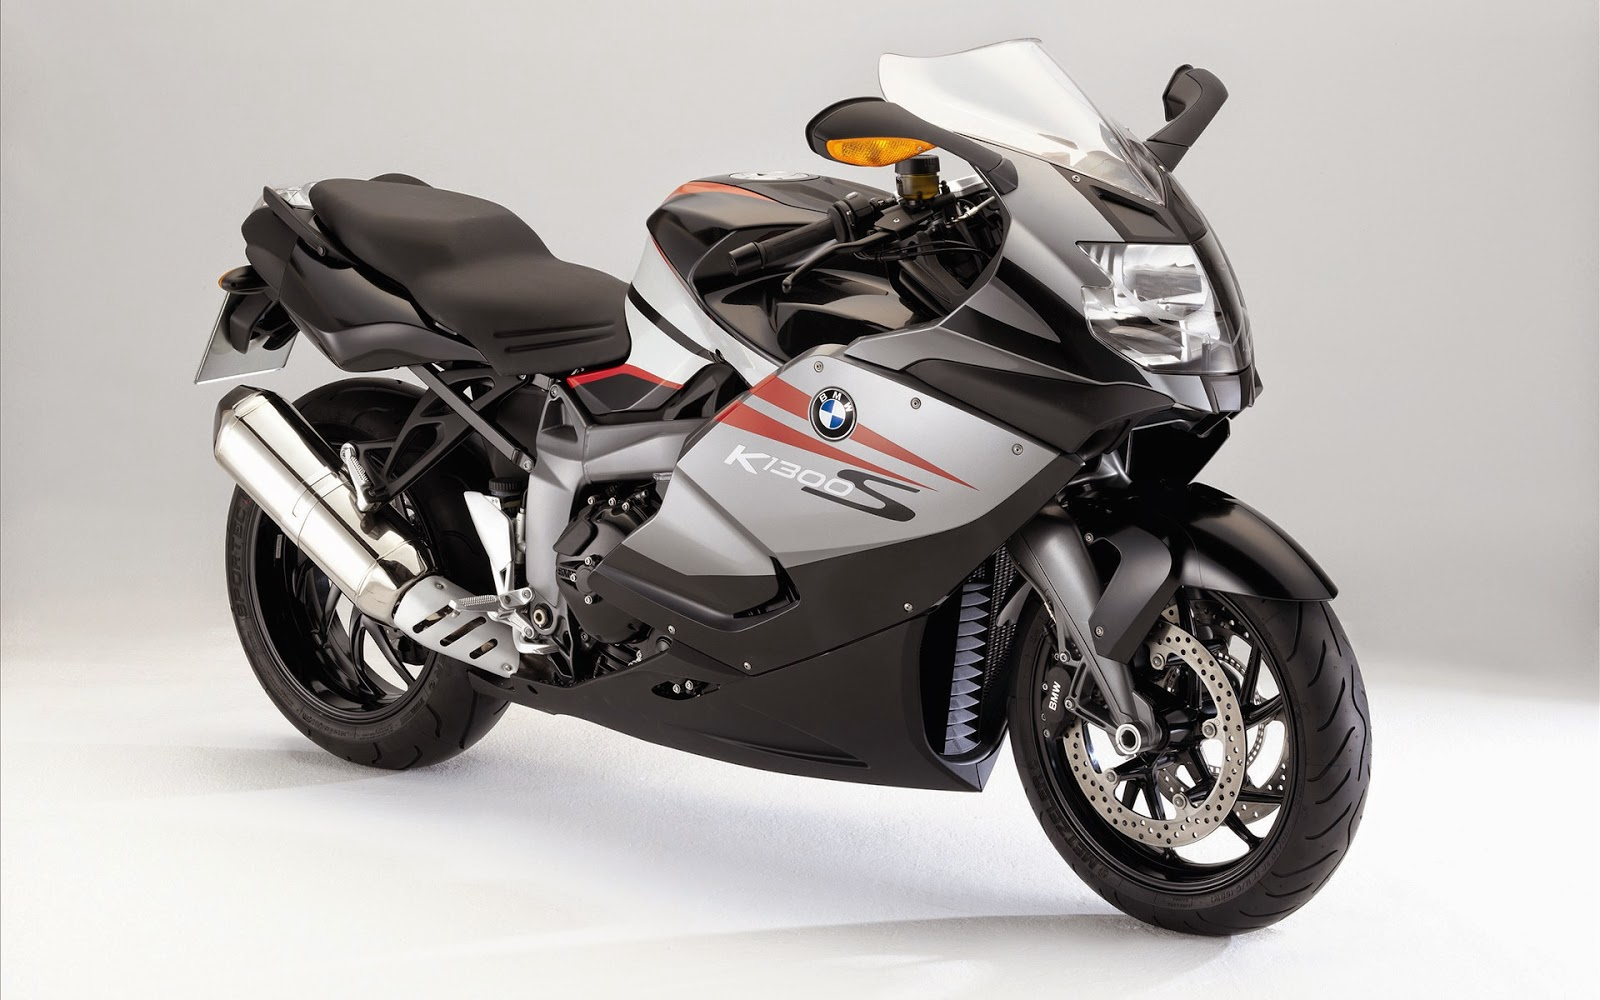 2015 New BMW S1000RR | Conquest Carbon |Fastest Superbike 2015